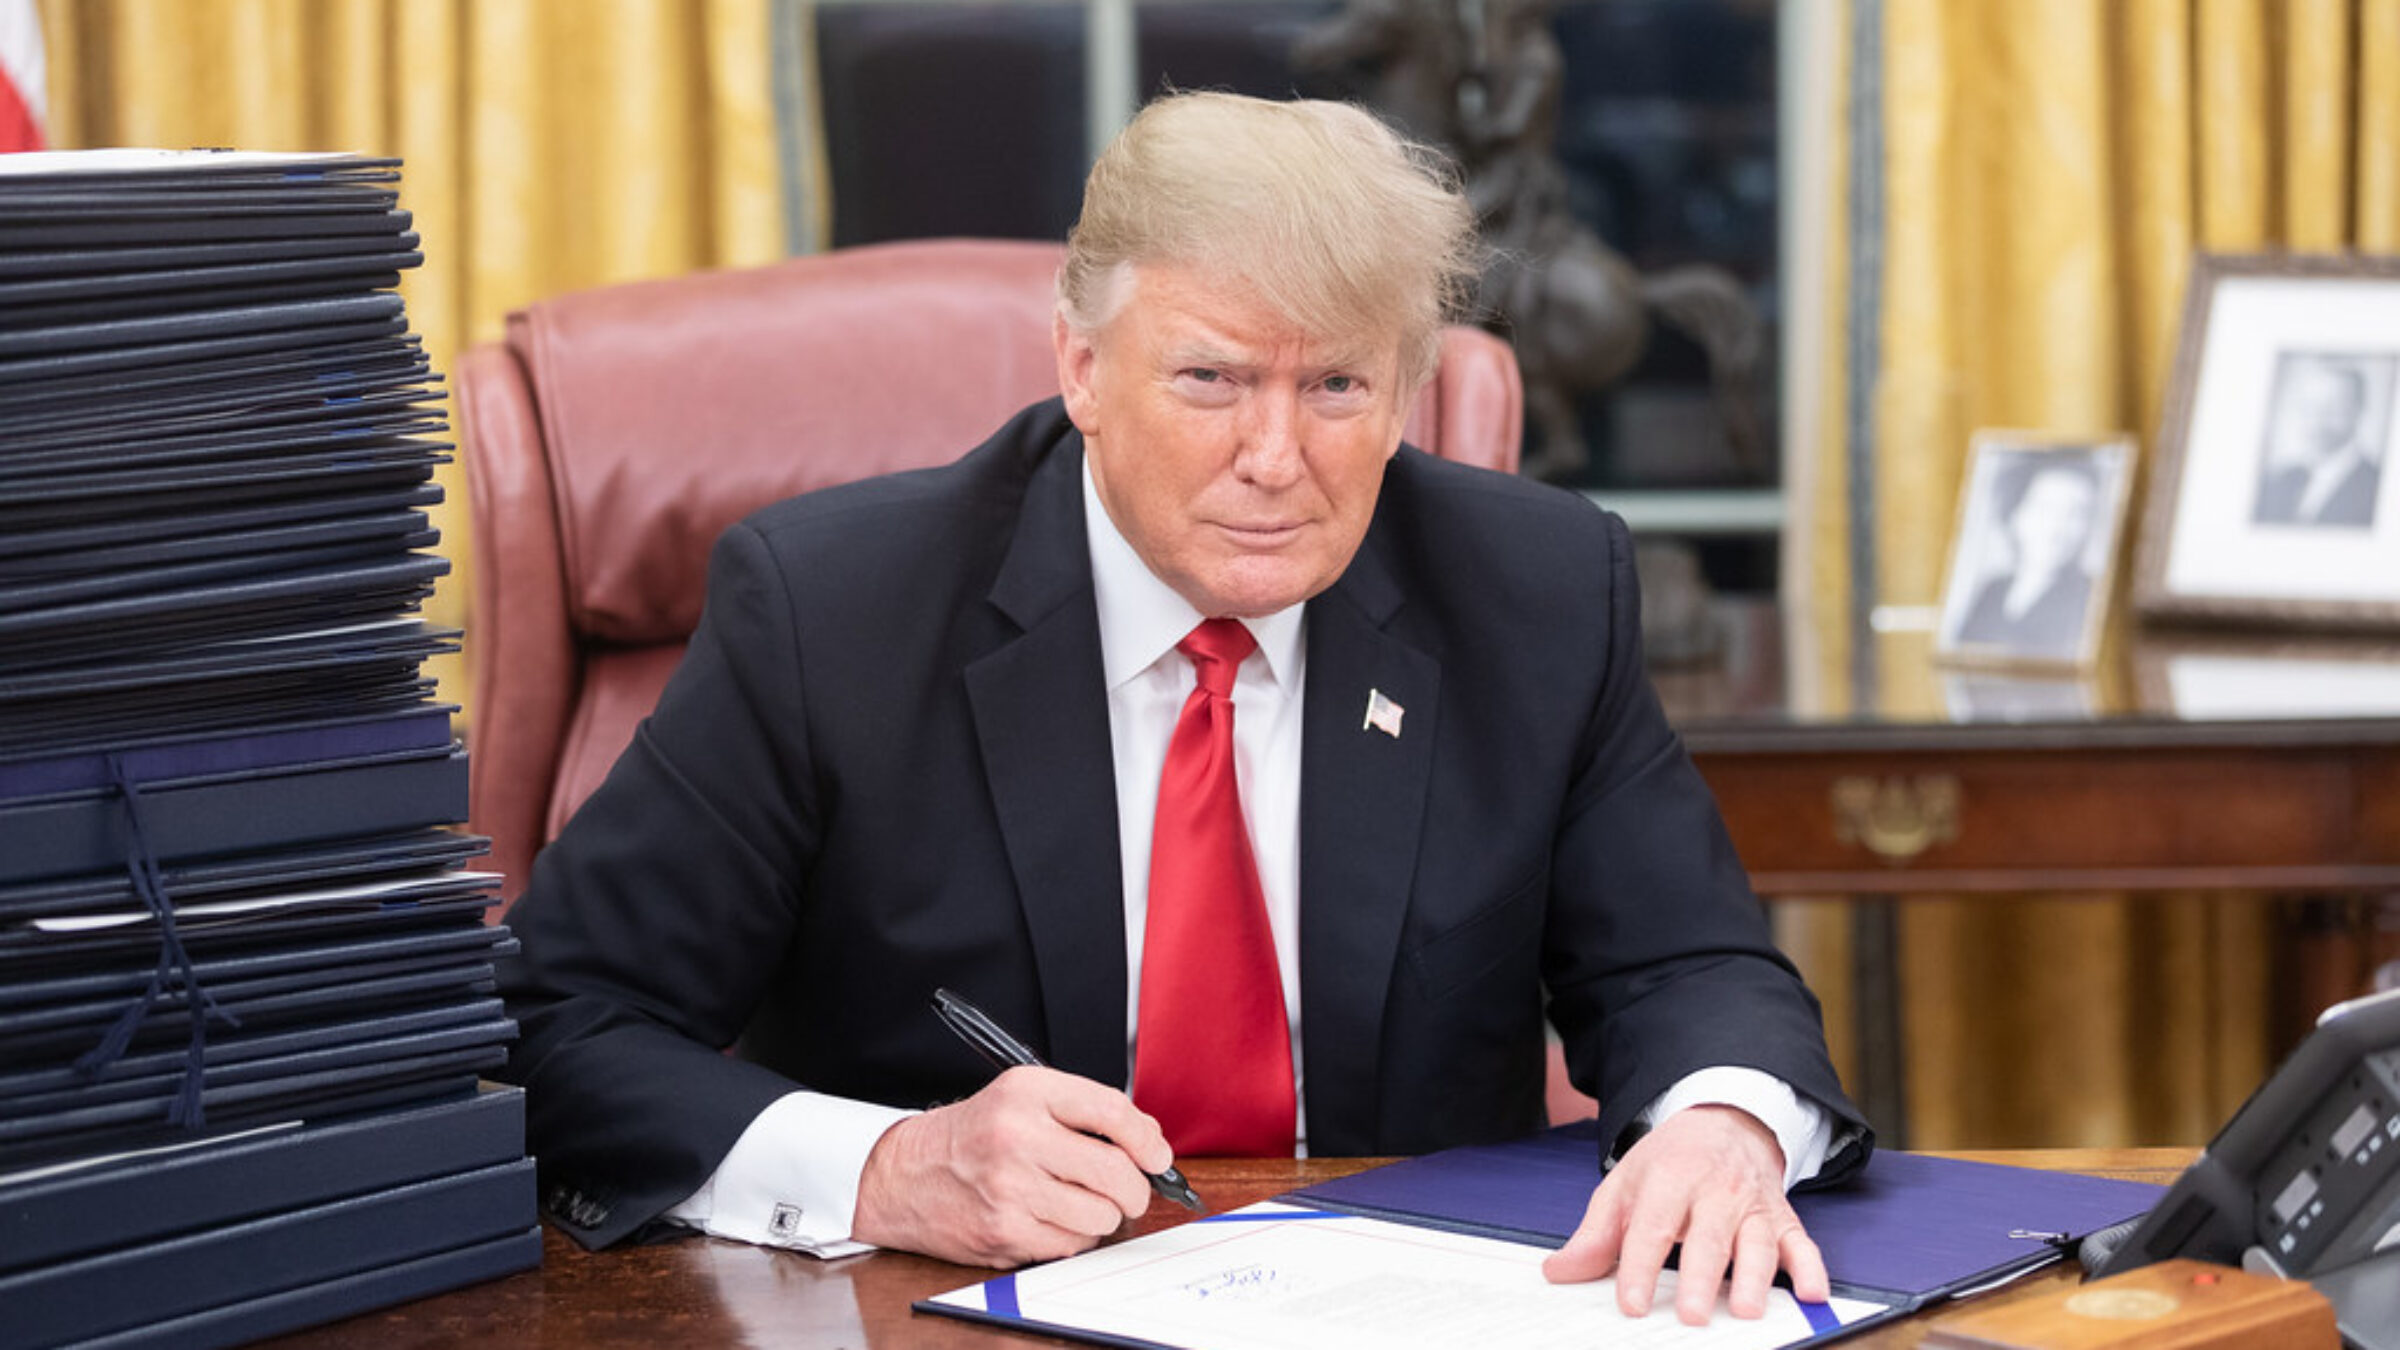 A straight-faced Donald Trump signs a document in the Oval Office